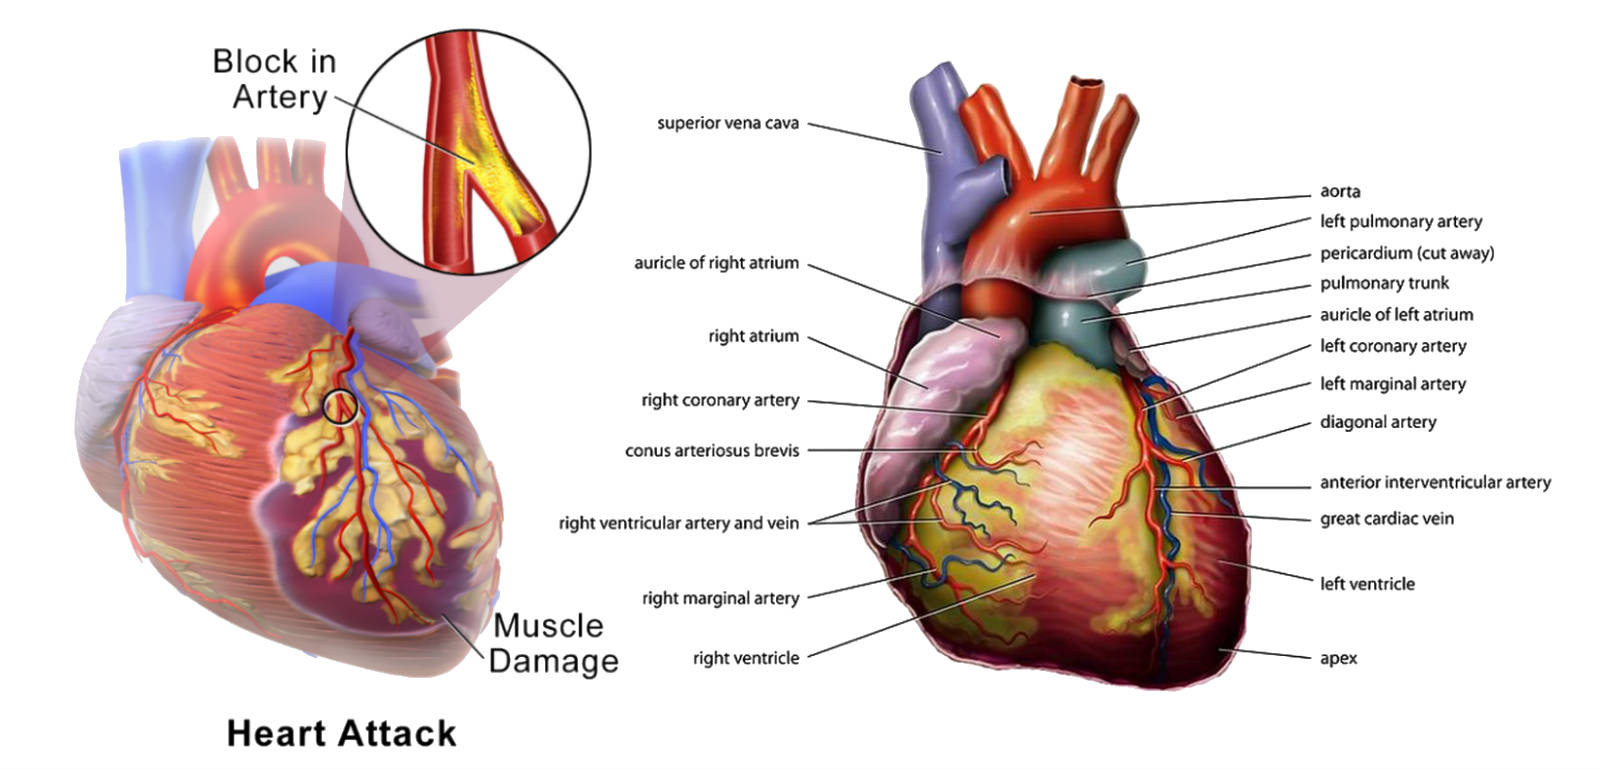 6 Unusual Heart Disease Signs - What Should You Do?